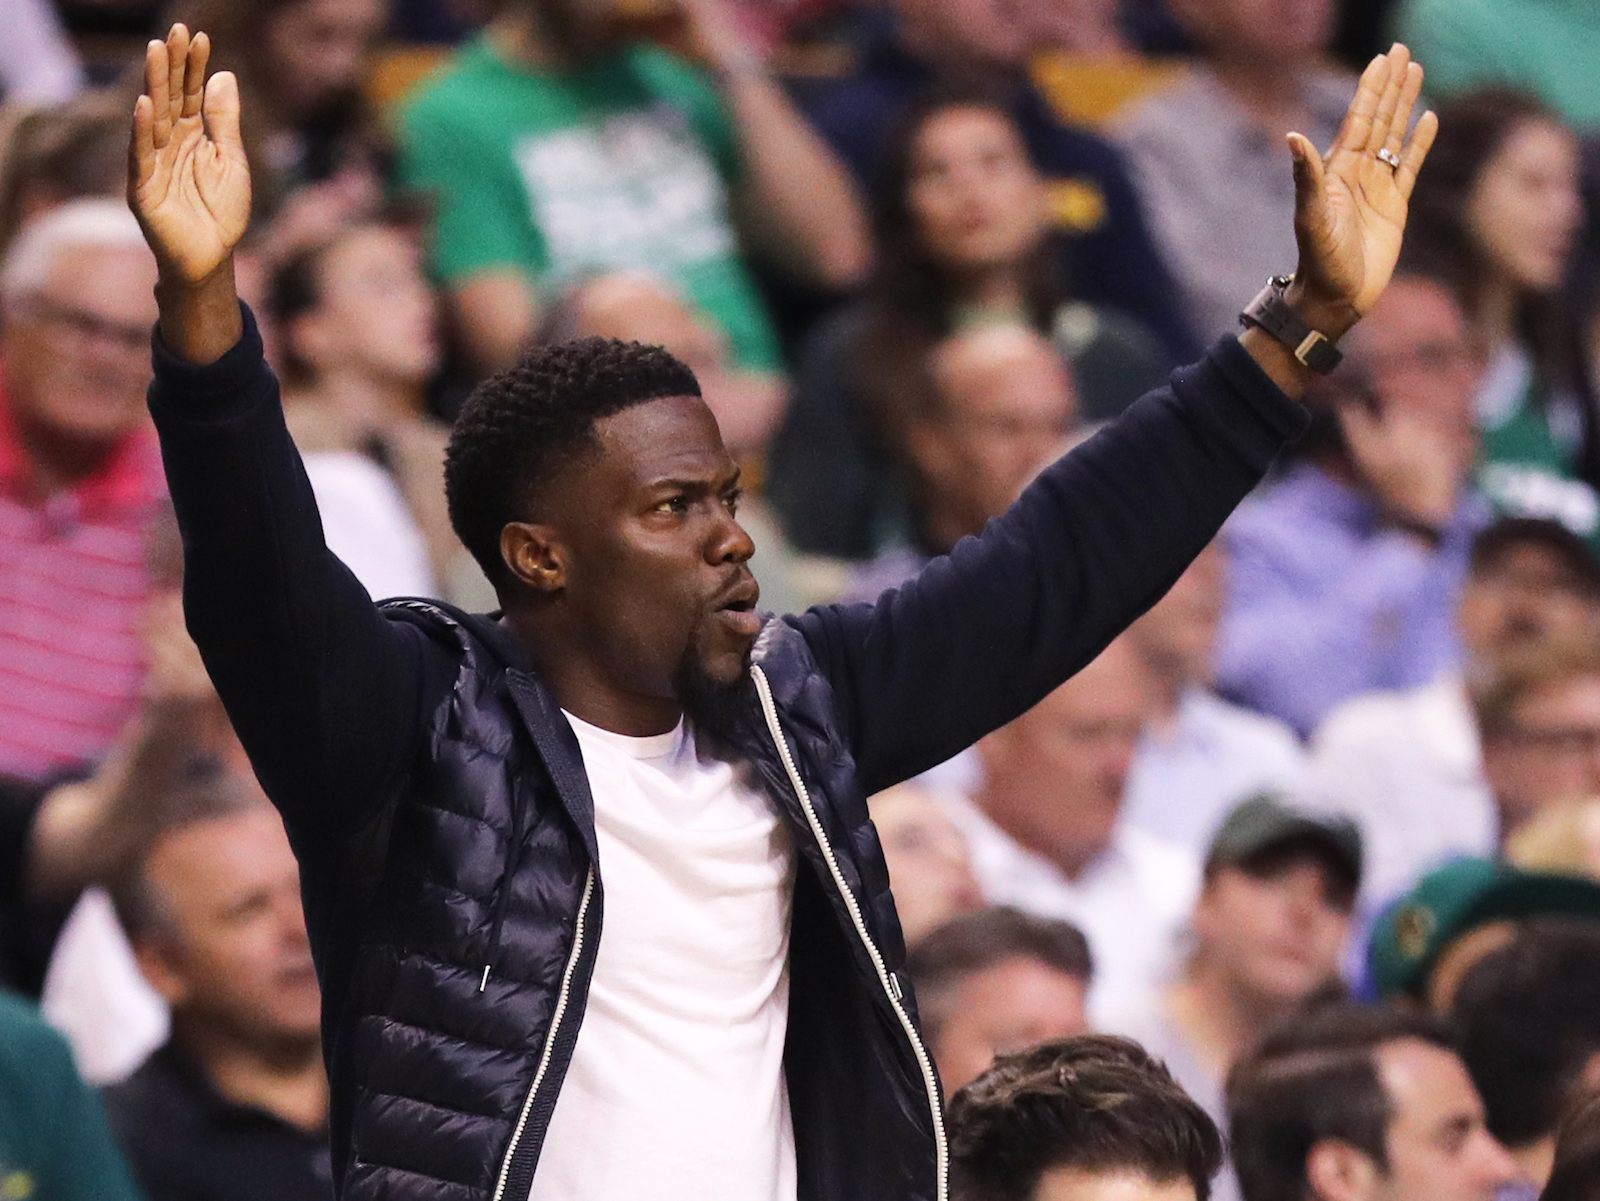 Watch Kevin Hart Attempt Beer Yoga with Chance the Rapper